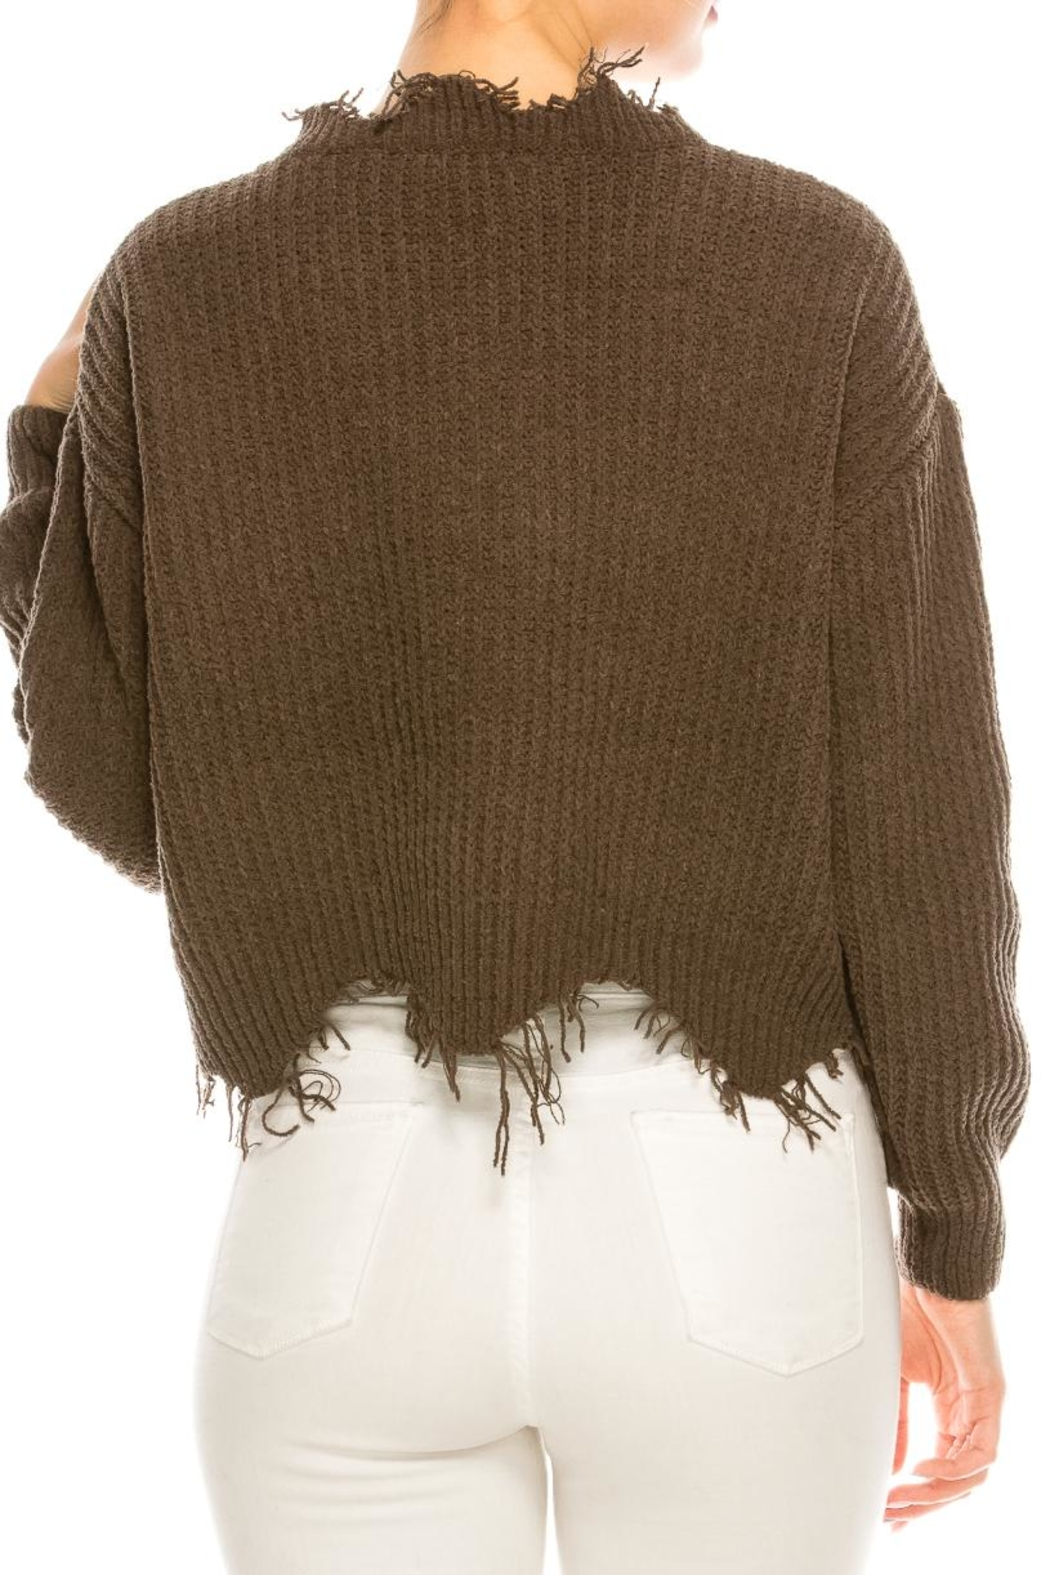 dress forum Cozy Distressed Sweater - Back Cropped Image